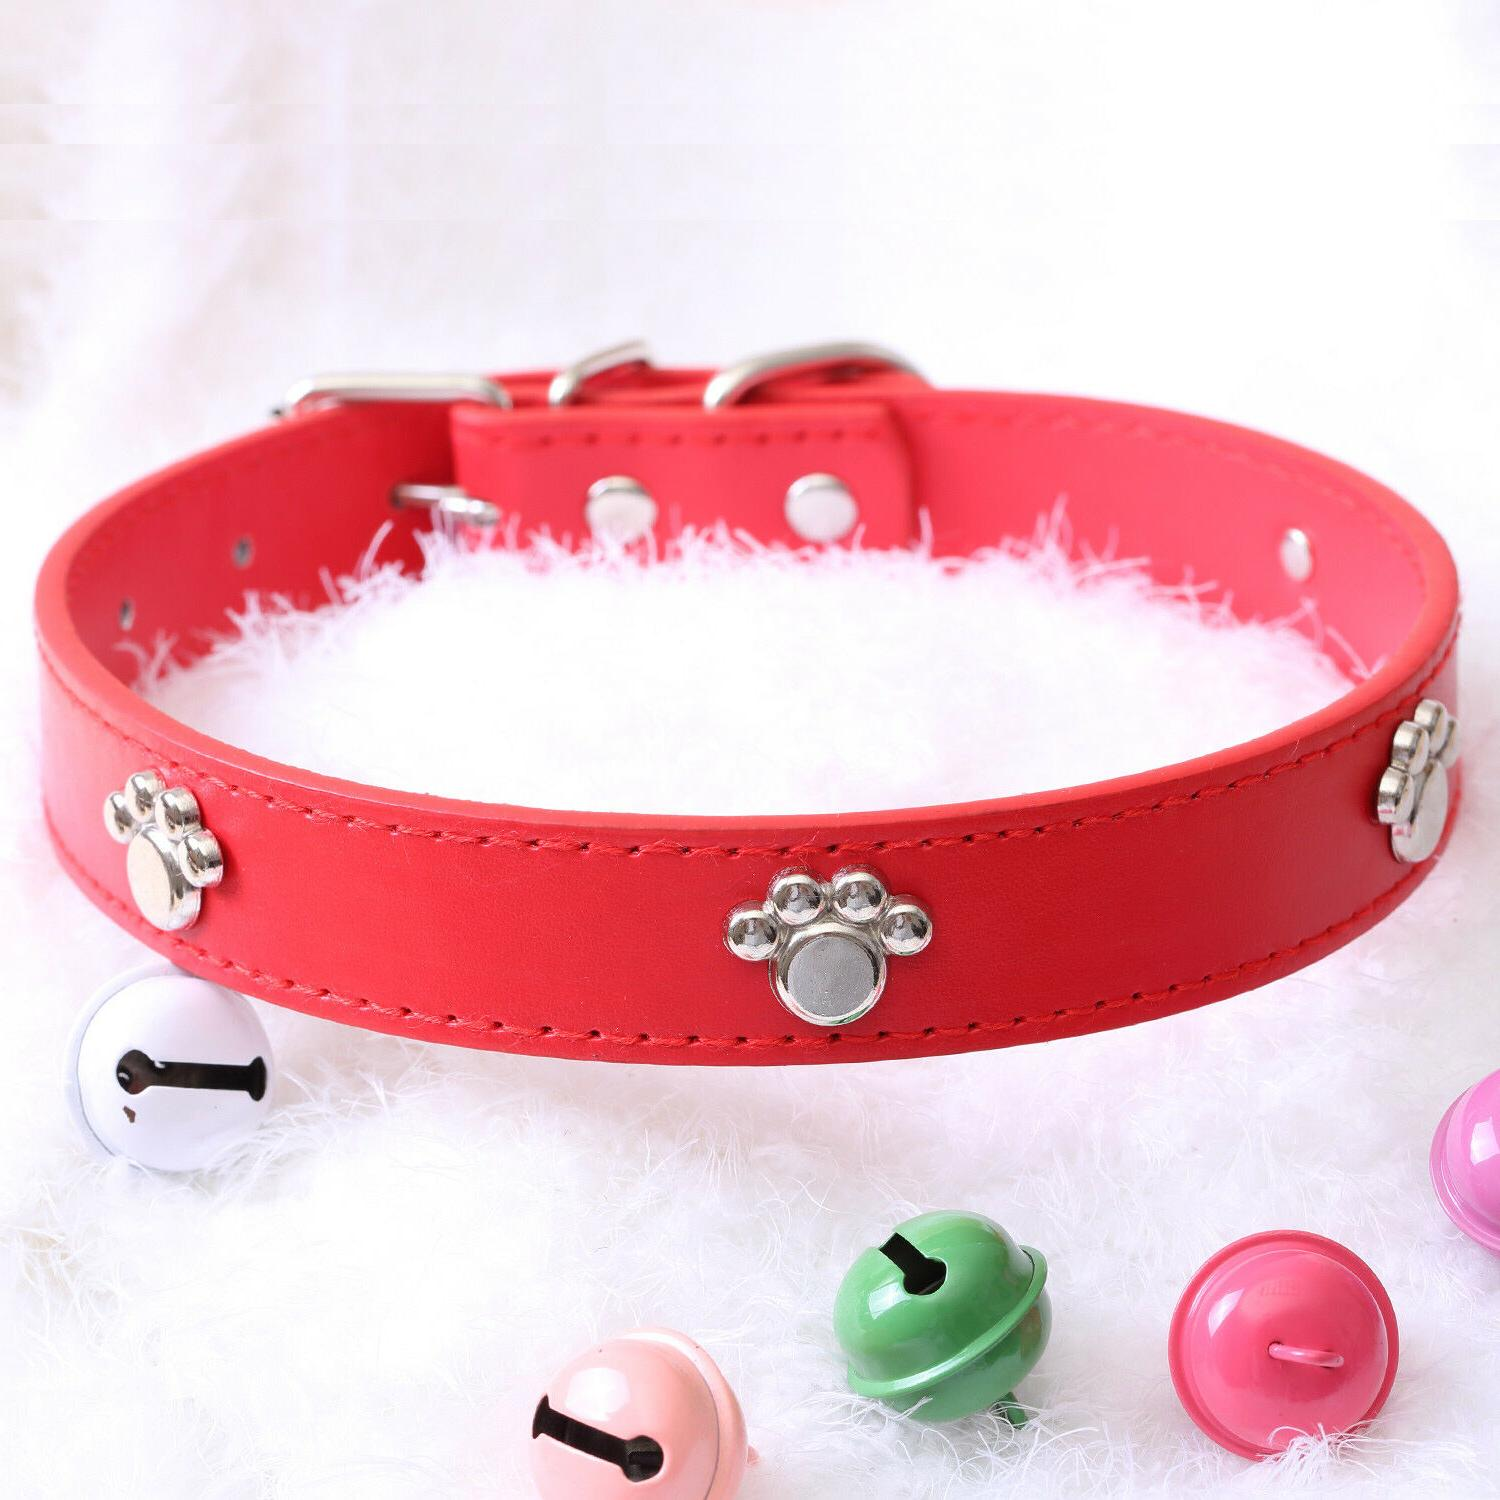 Jeweled Faux Leather Collar Cat Small XS Adjustable Hook